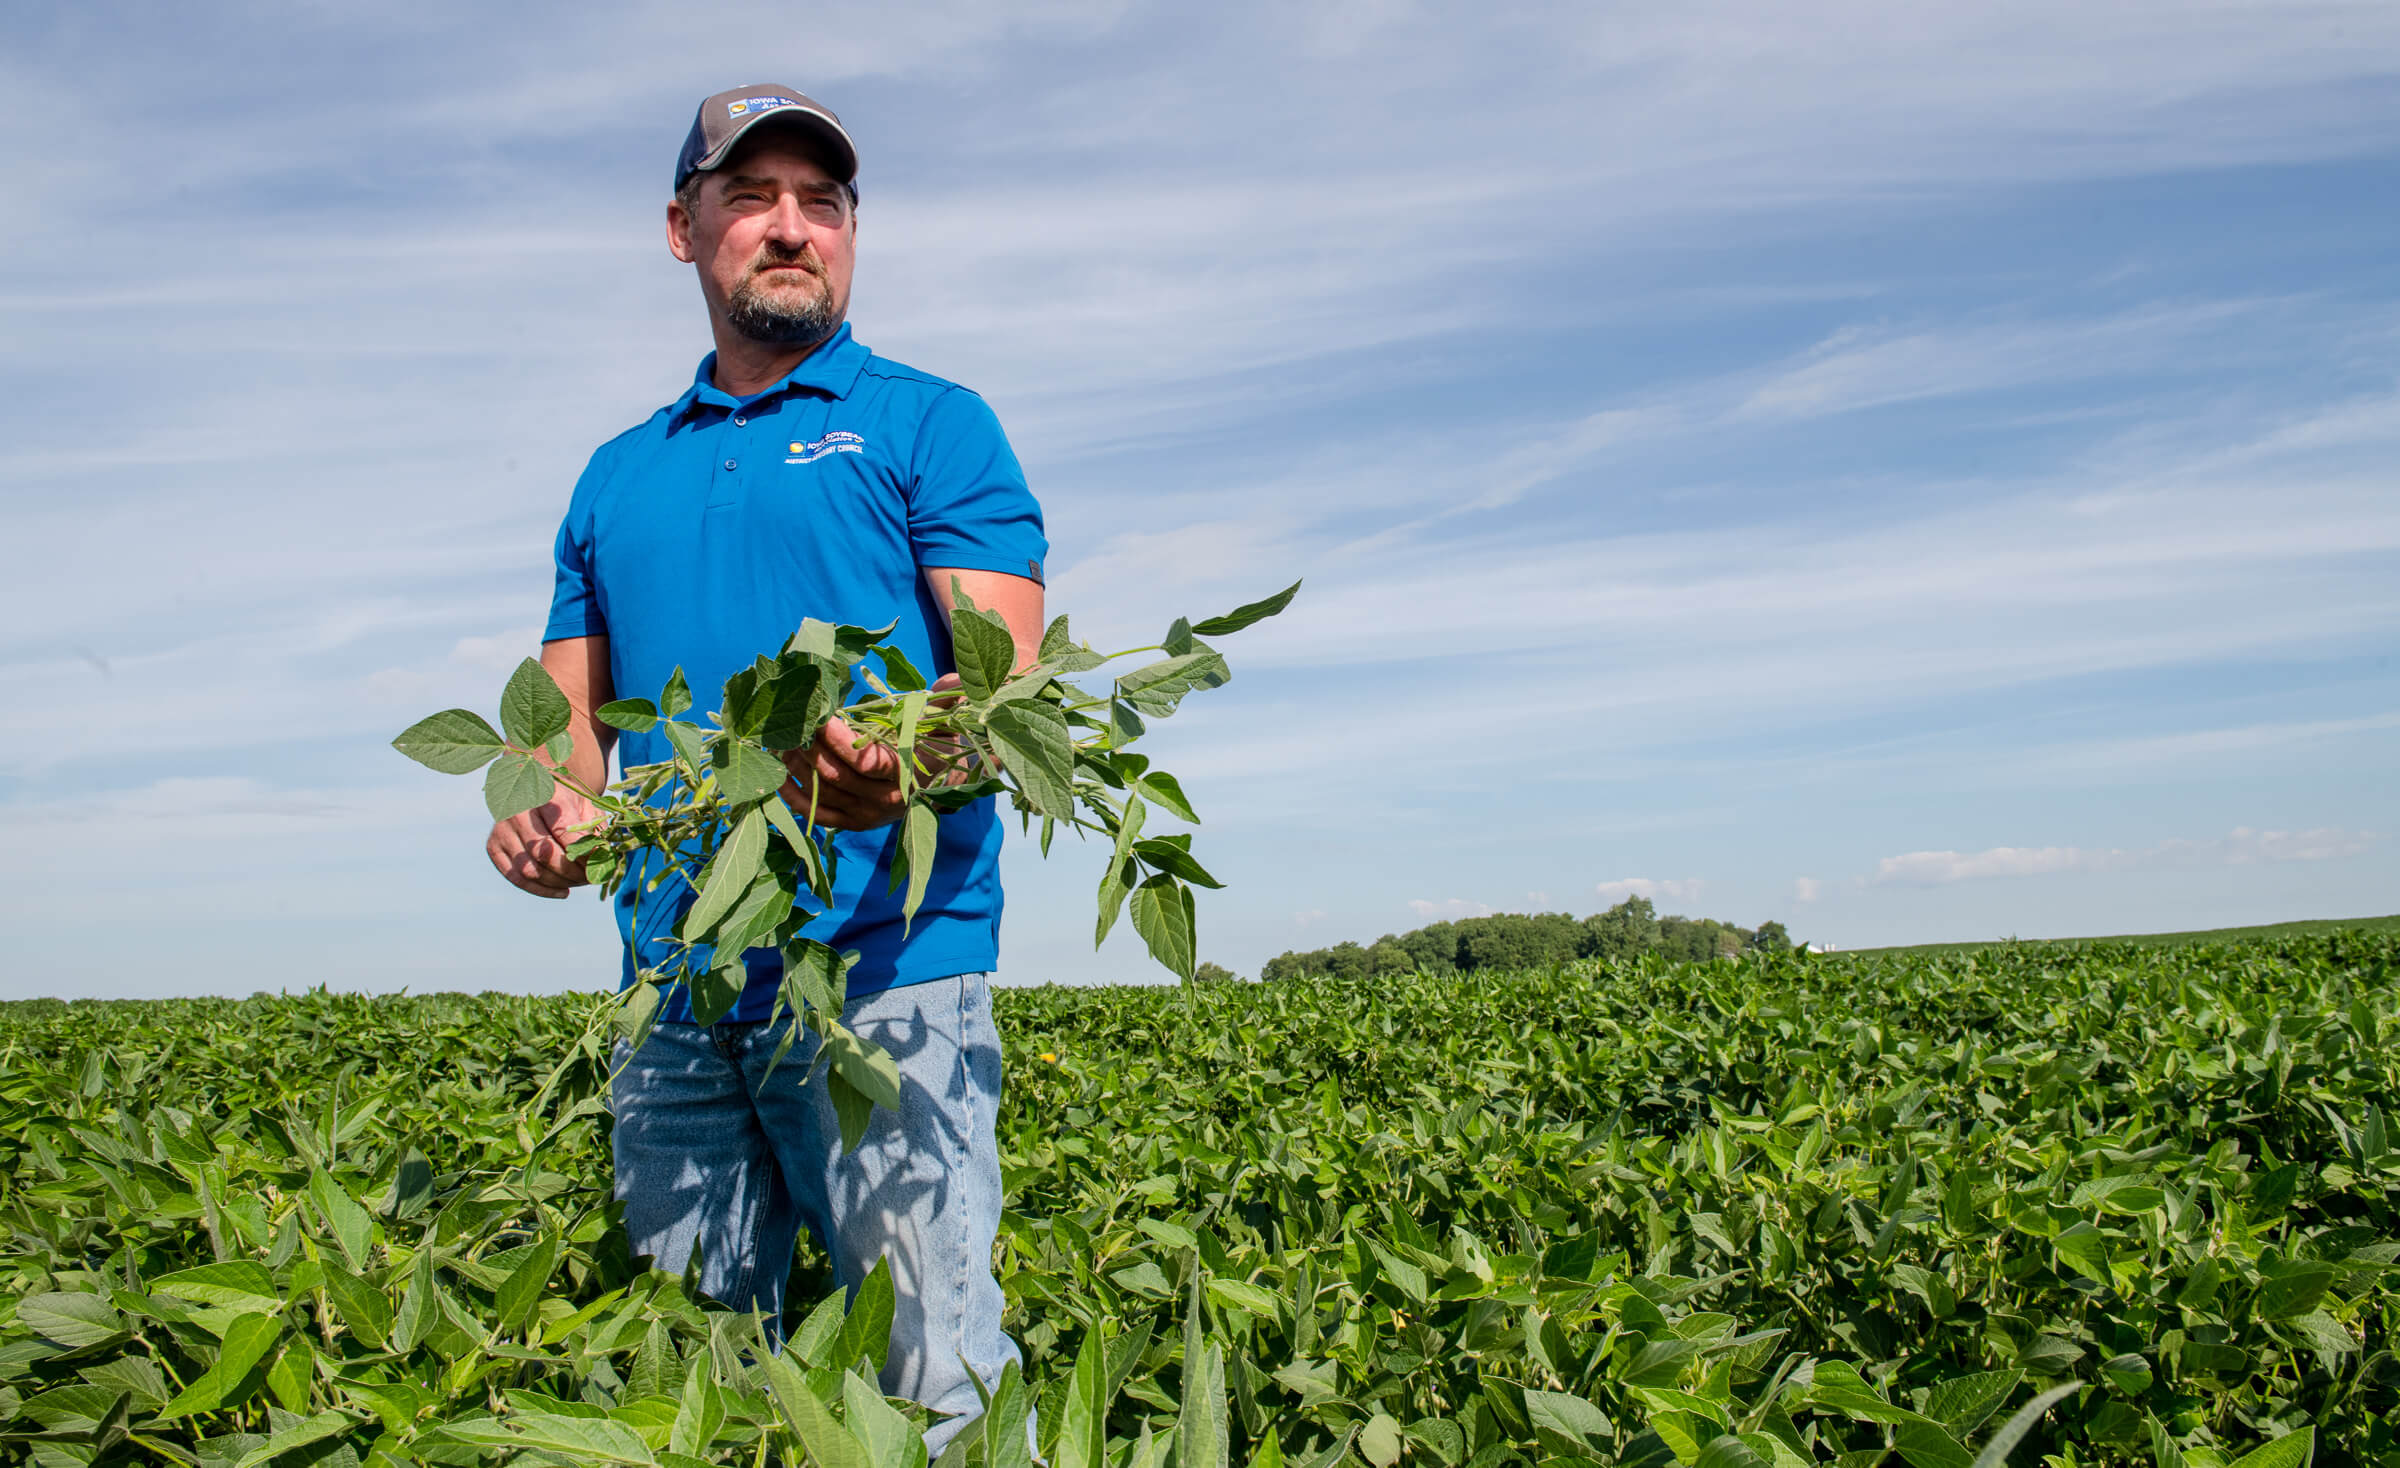 Tim Bardole in blue shirt holding soybean plants in a s